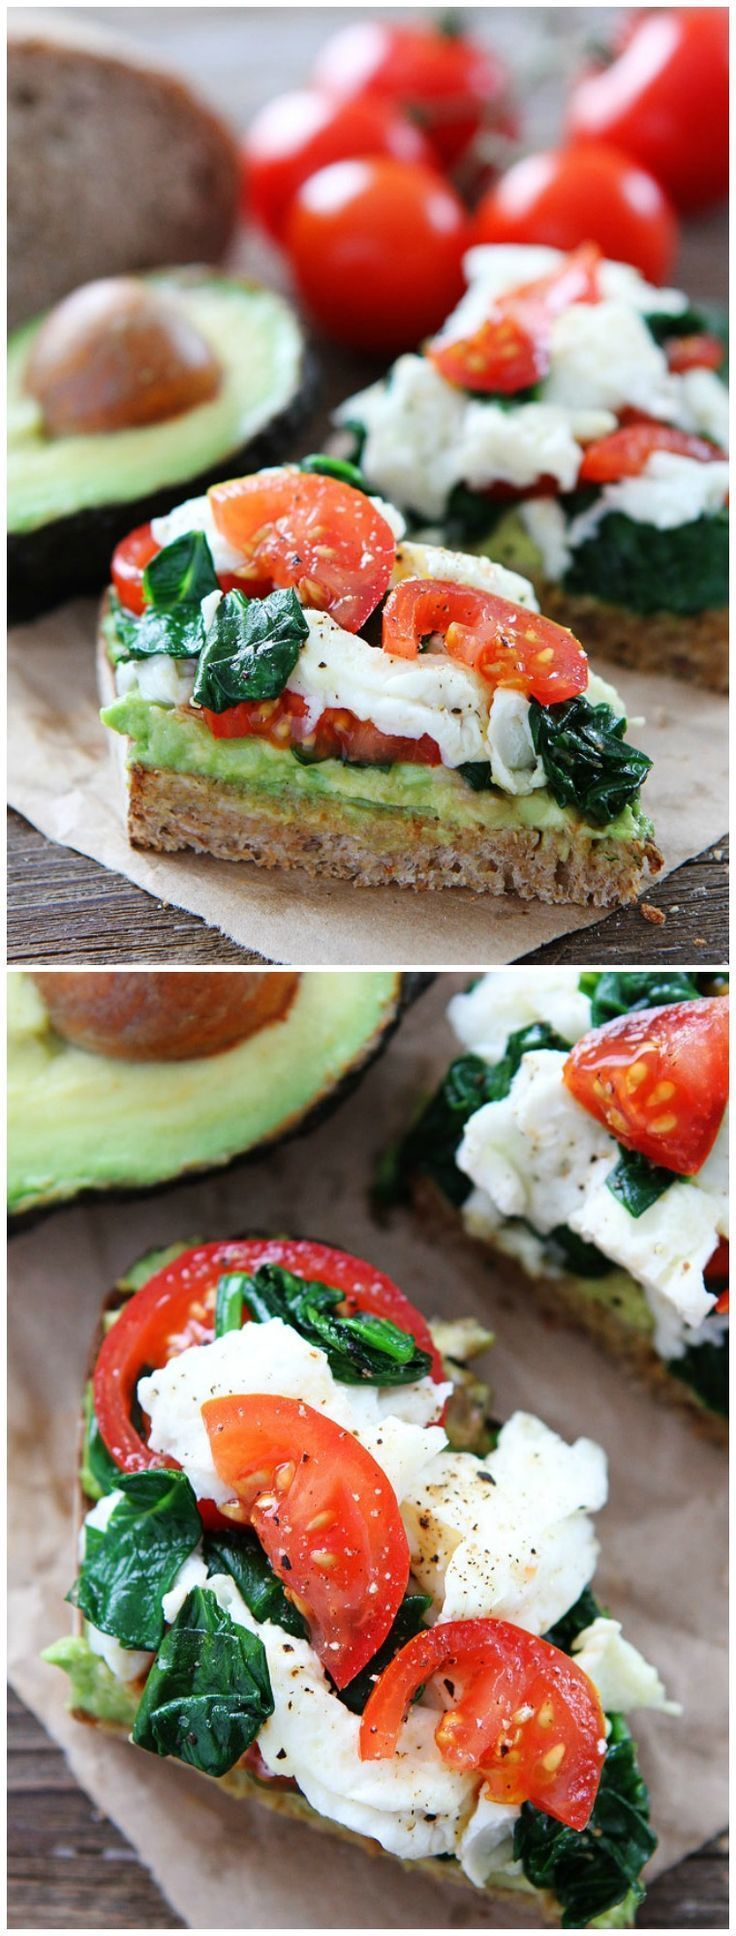 Avocado Toast with Eggs, Spinach, and Tomatoes Recipe on http://twopeasandtheirpod.com This easy and healthy recipe is great for breakfast, lunch, dinner, or snack time!